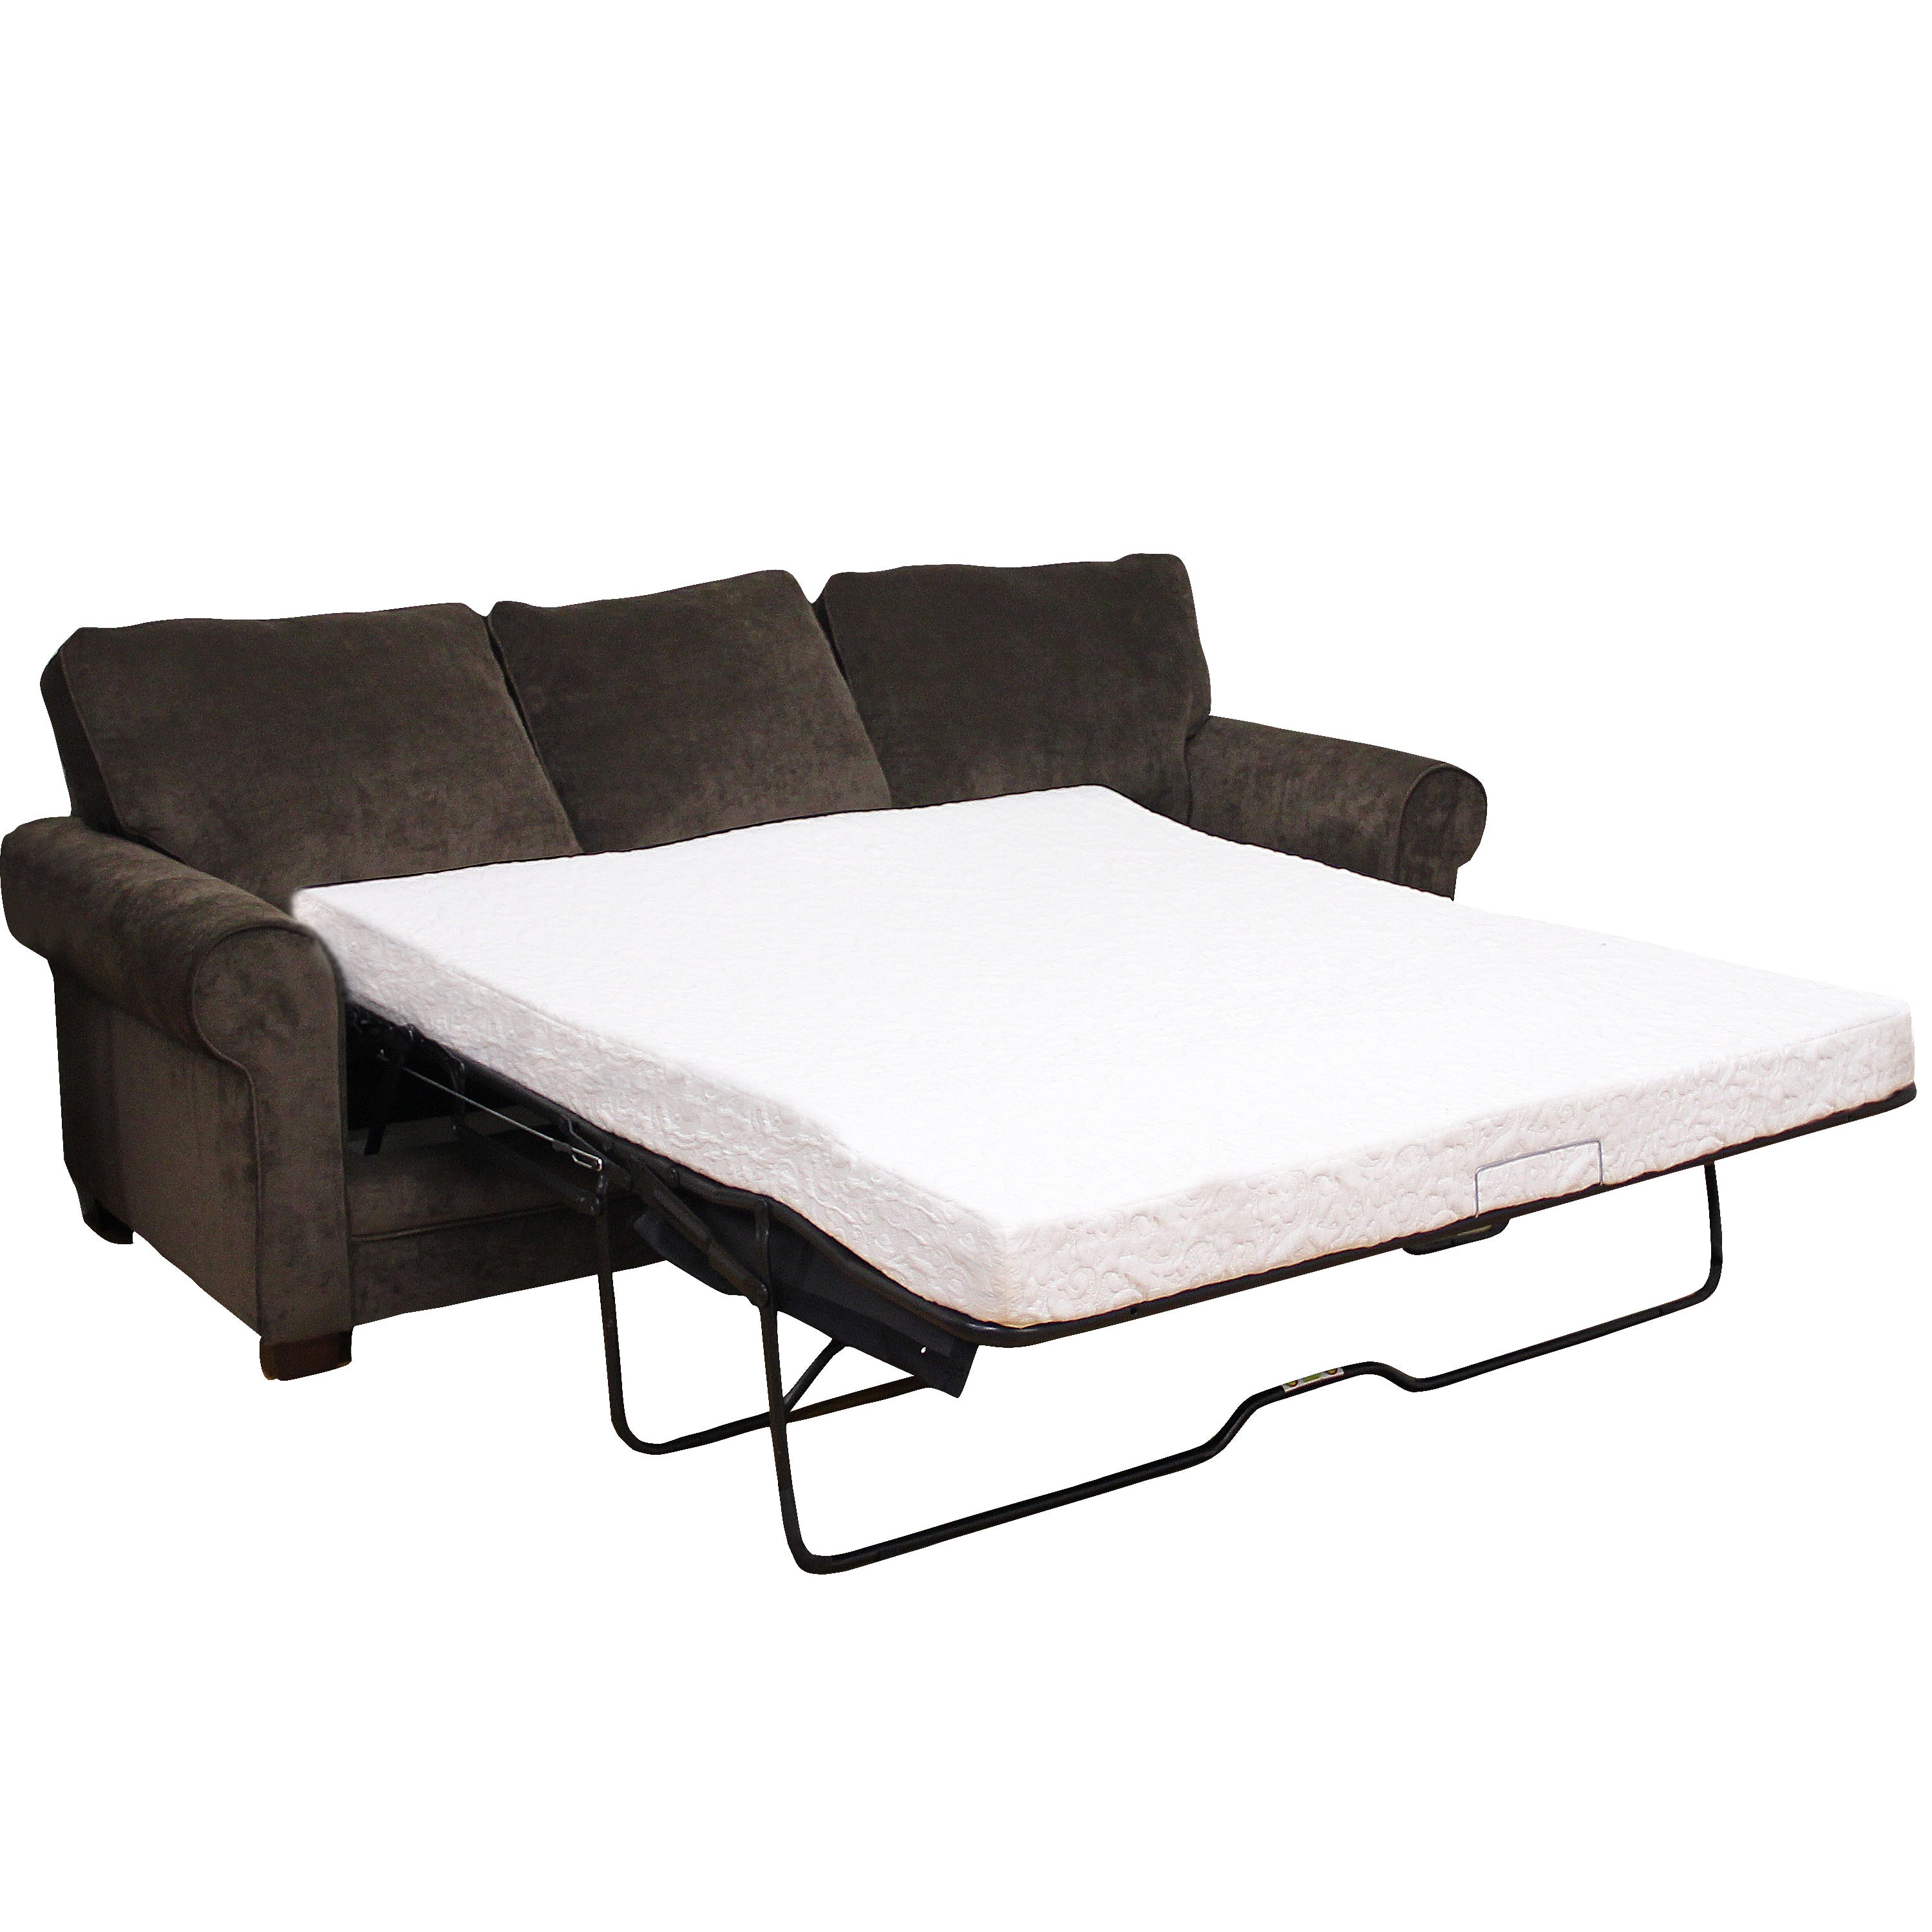 Enjoyable Classic Brands Kendall 4 5 Inch Cool Gel Memory Foam Sofa Bed Mattress Overstock Com Shopping The Best Deals On Mattresses Home Remodeling Inspirations Basidirectenergyitoicom